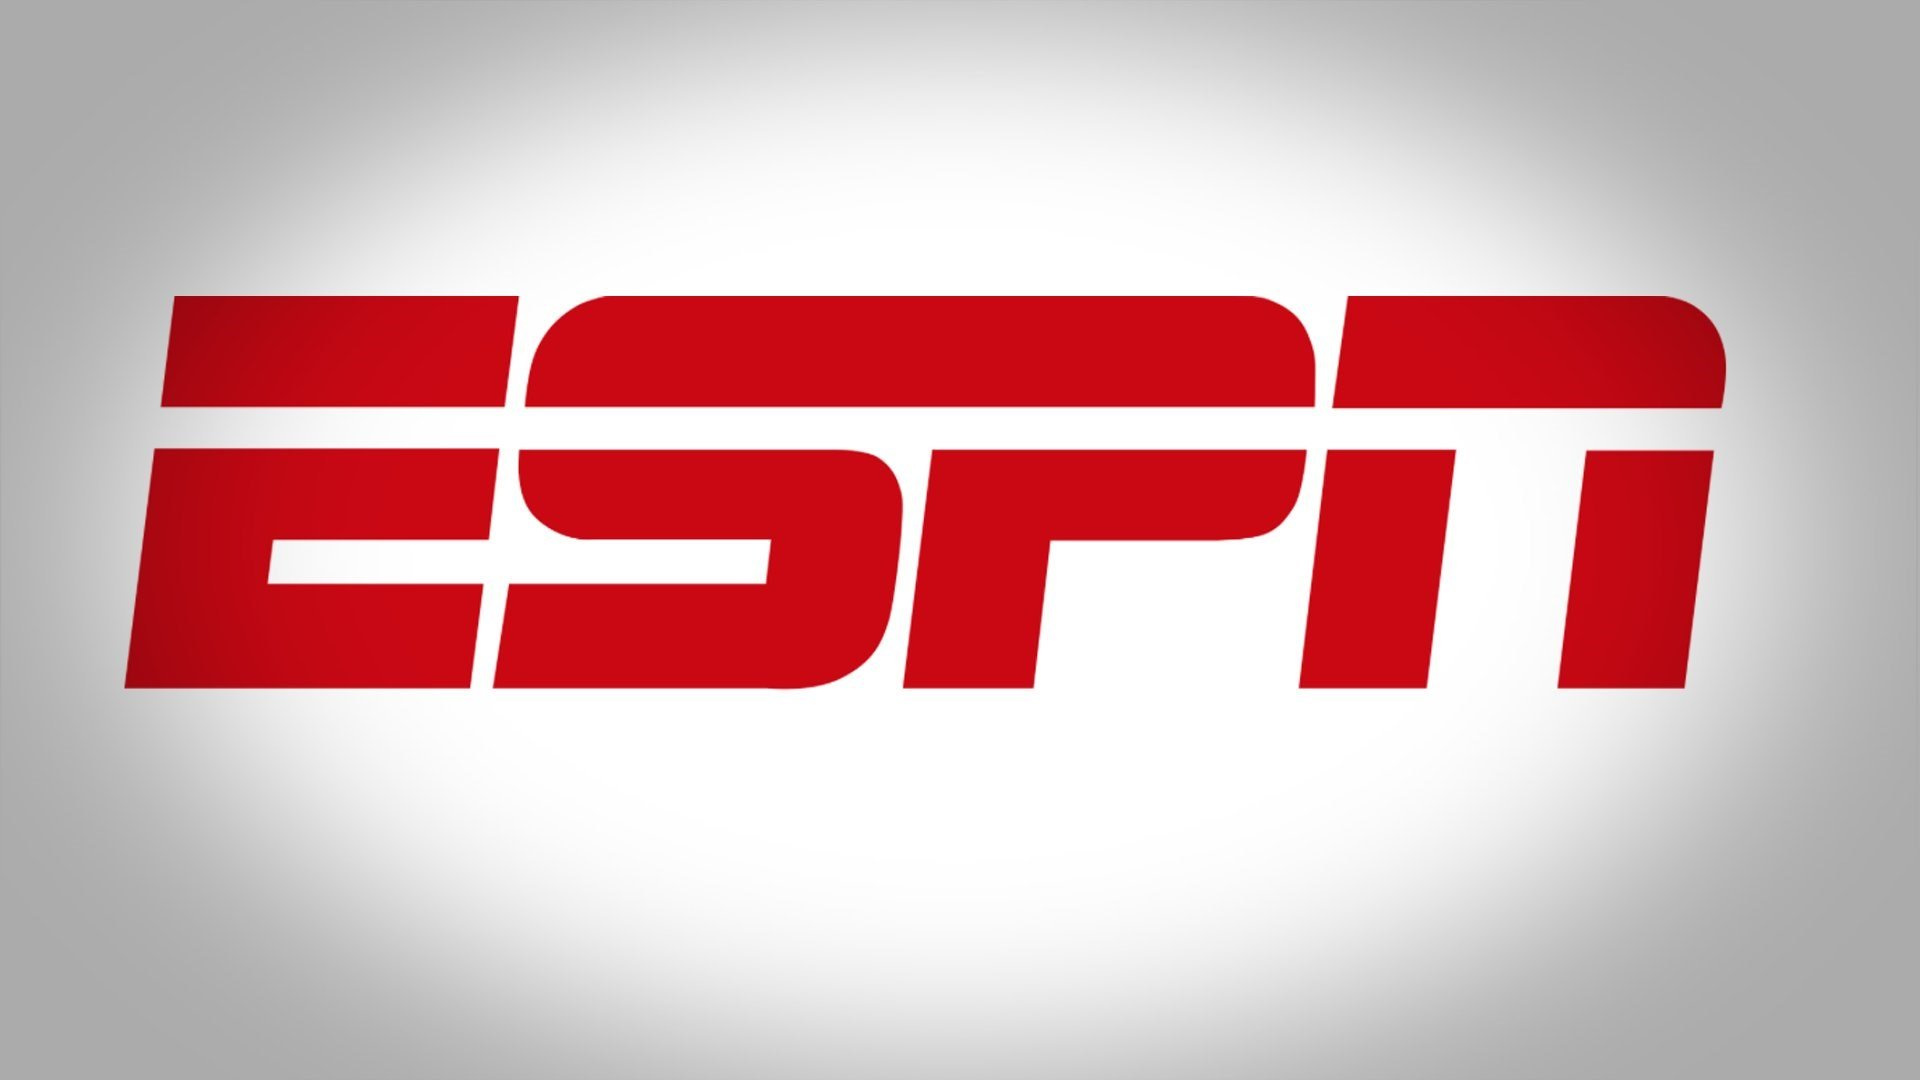 Disney Announces ESPN Plus: Is It Too Little Too Late?